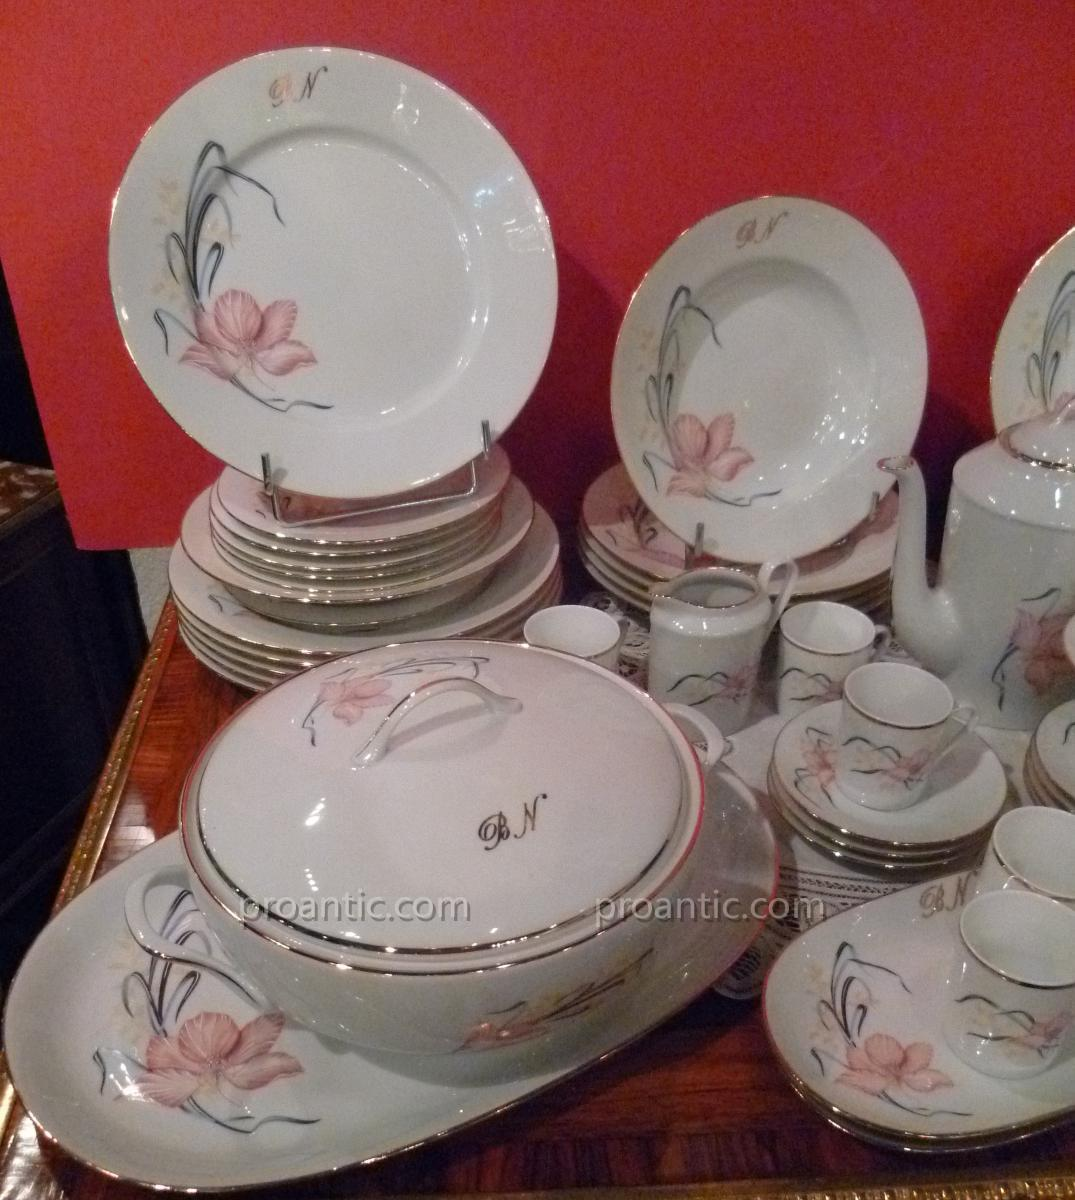 Service de table porcelaine de limoges jb de saint eloi for Service de table pas cher